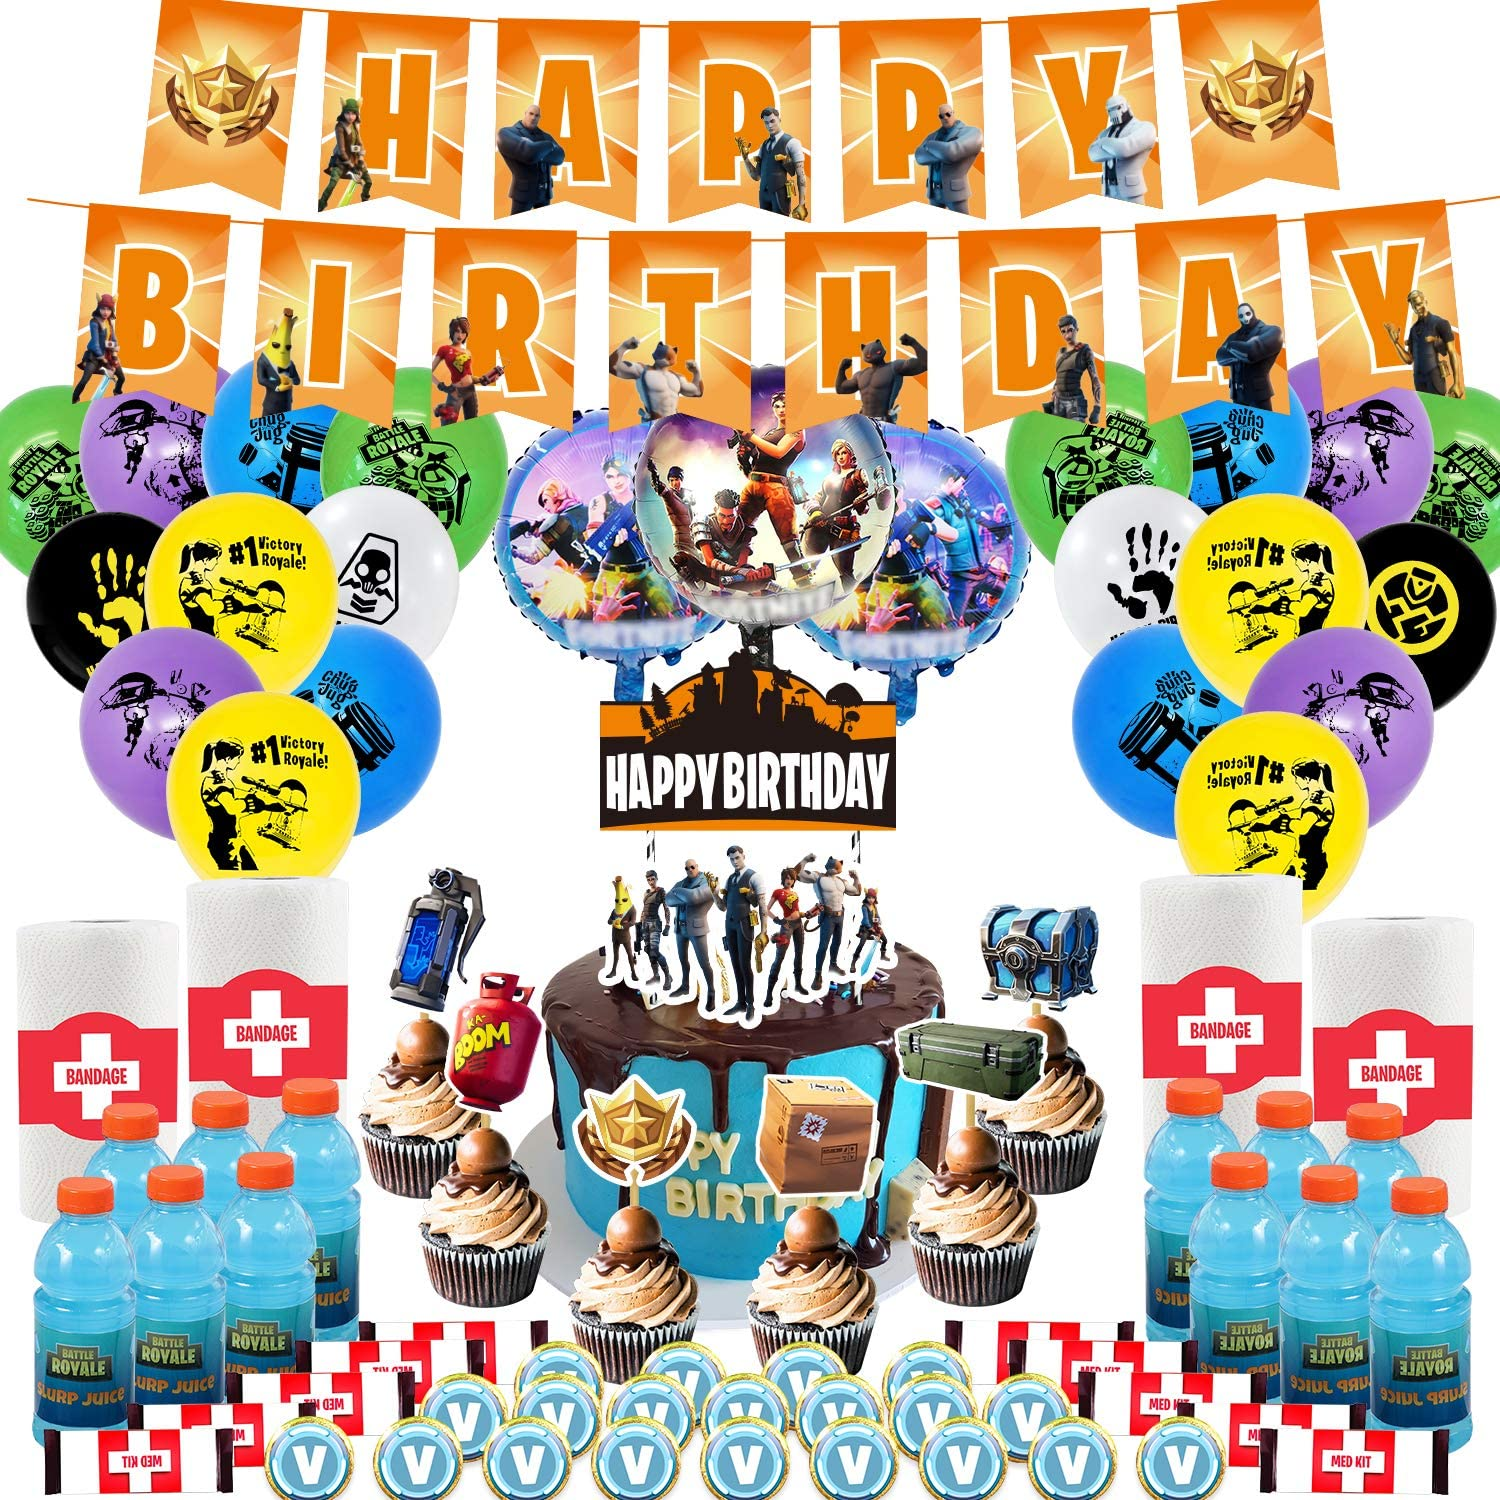 Birthday Party Supplies for Game Fans, 98 pcs Video Game Party Supplies, Birthday Party Decorations - Cake Topper, Bottle Label, Chocolate Sticker, Latex Balloon, Foil Balloon, Roll Paper Sticker, Banner